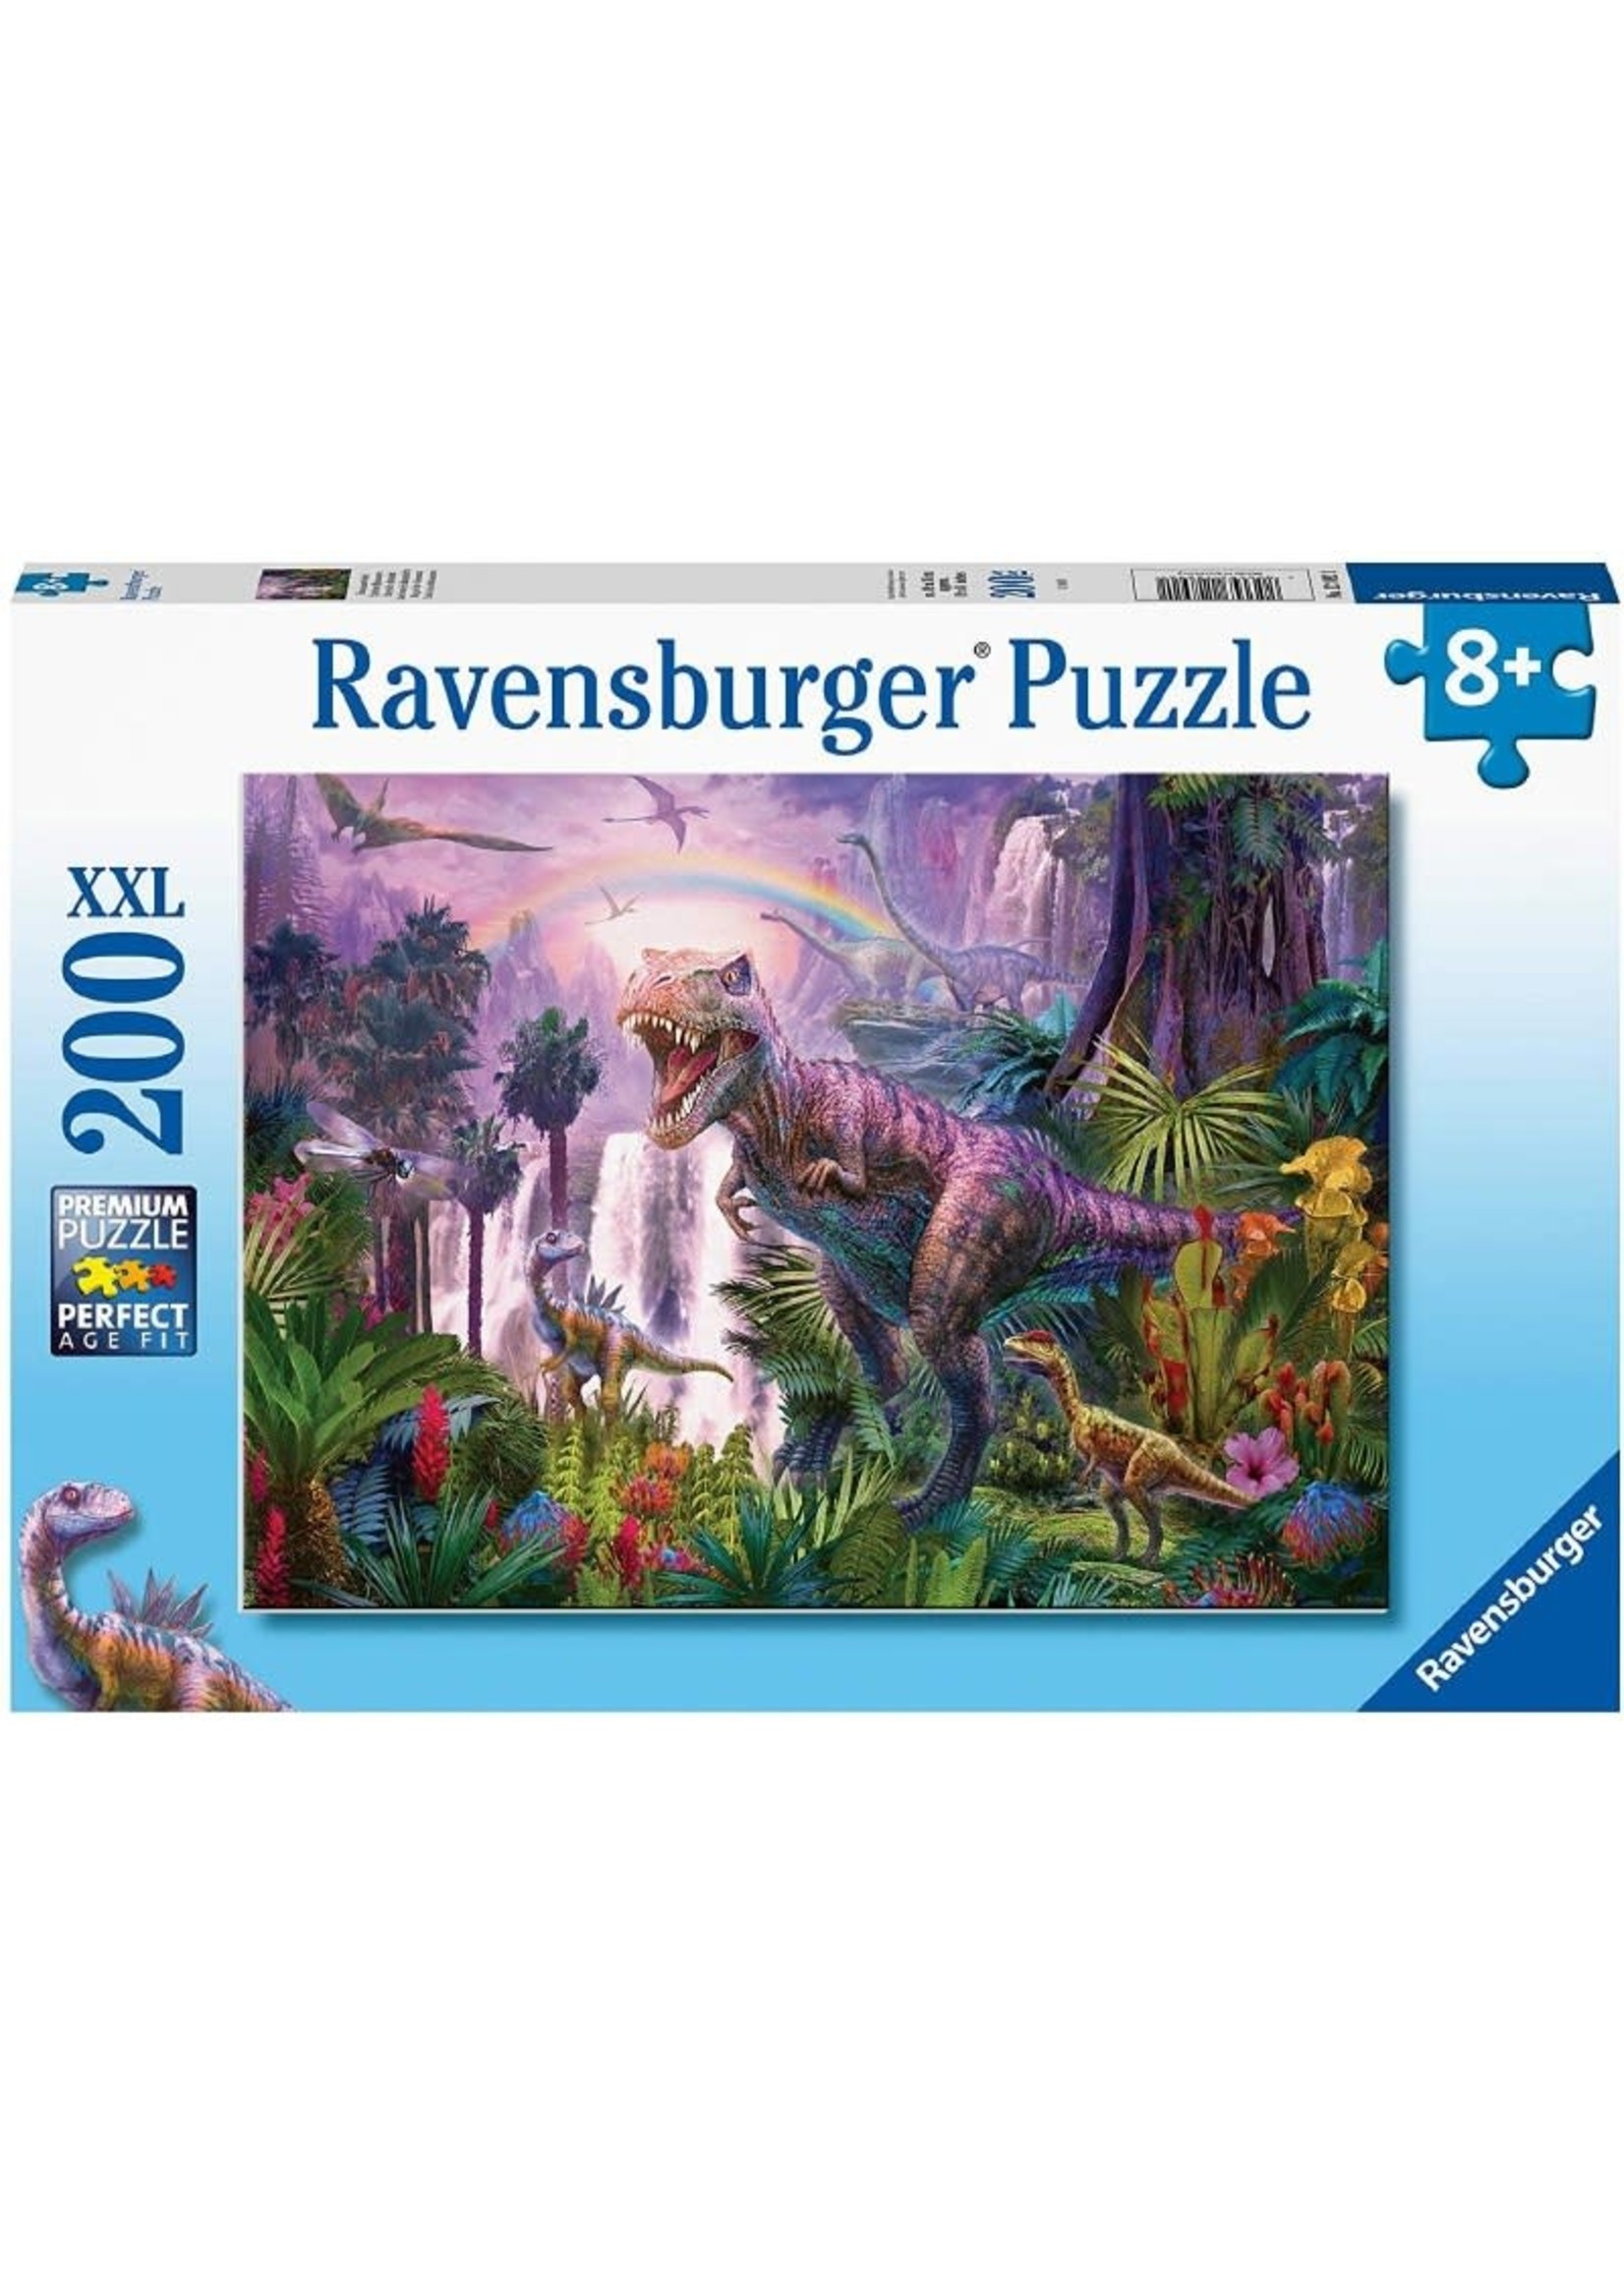 Ravensburger 200pc XXL puzzle King of the Dinosaurs